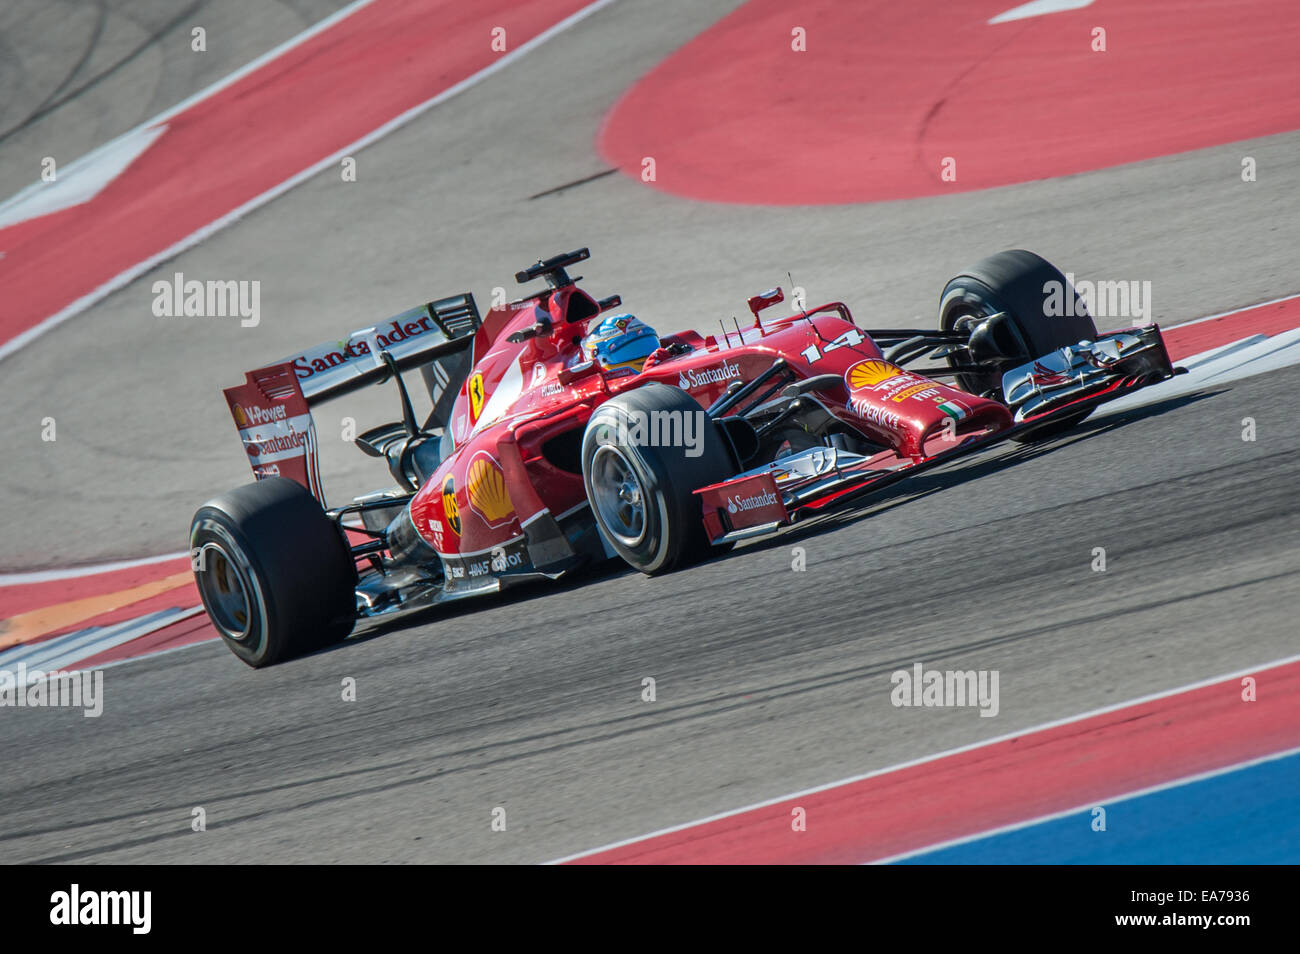 Fernando Alonso of Ferrari seen driving at Circuit of the Americas during practice for the 2014 United States Grand Stock Photo